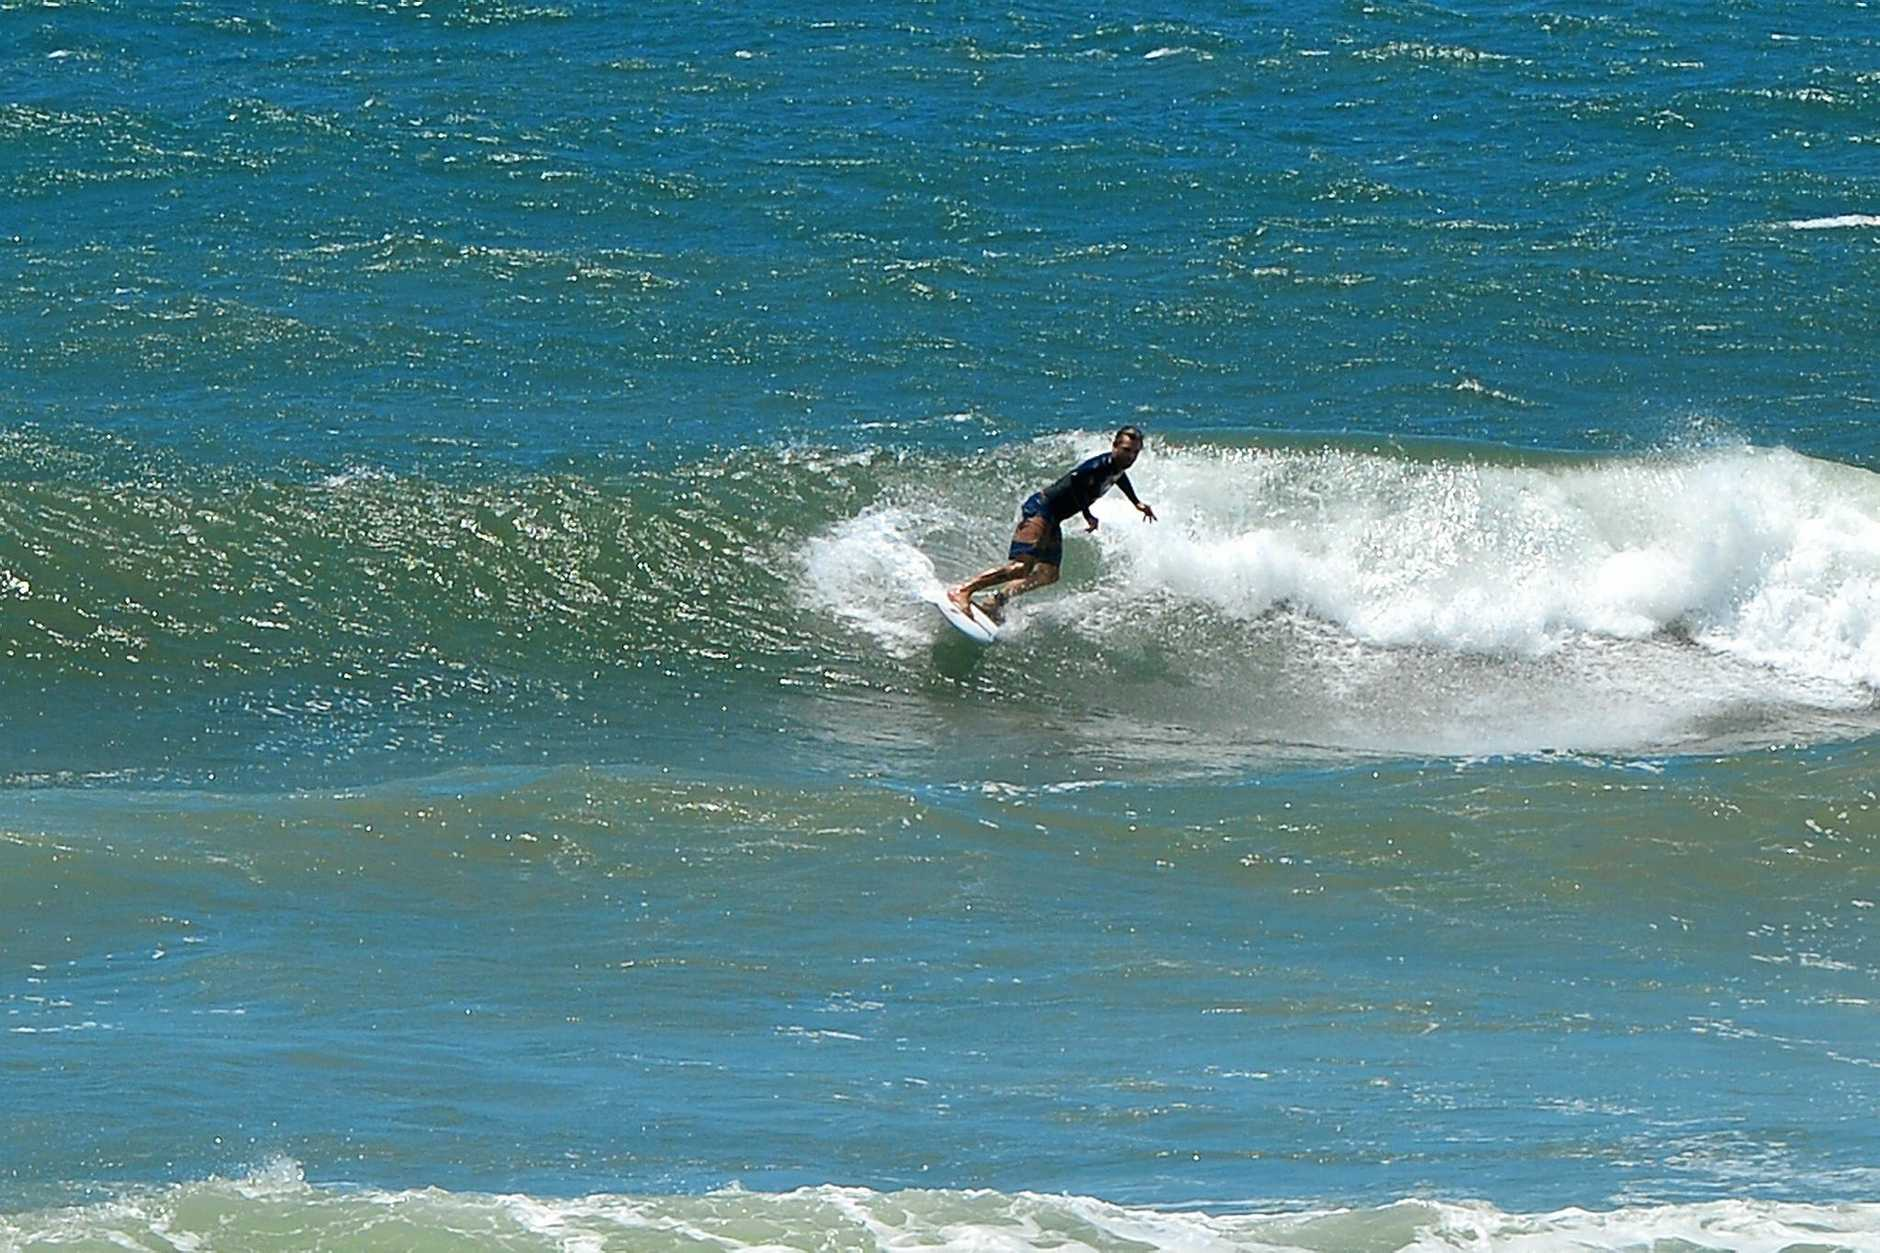 Swell builds at Alexandra Headland on Wednesday.